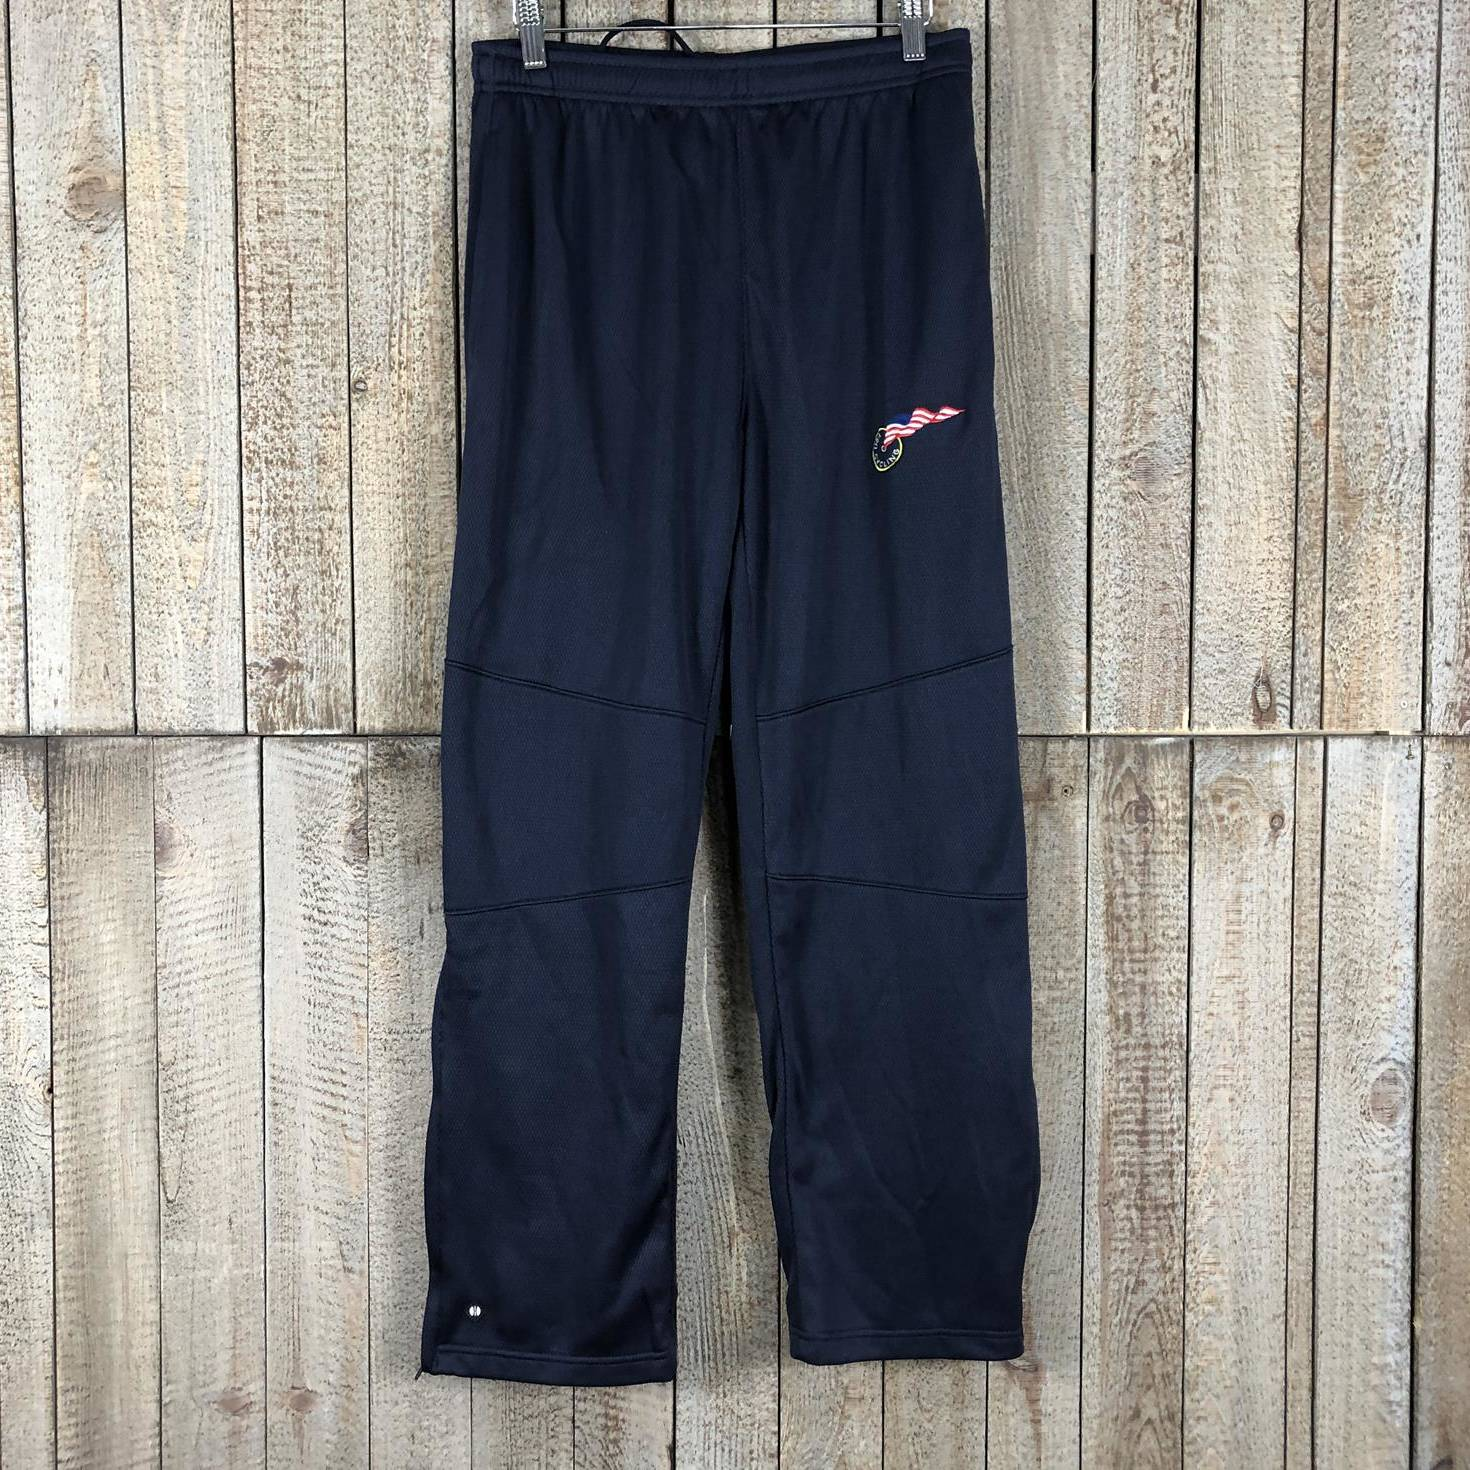 Sports Pants - USA Cycling 00002726 (1)